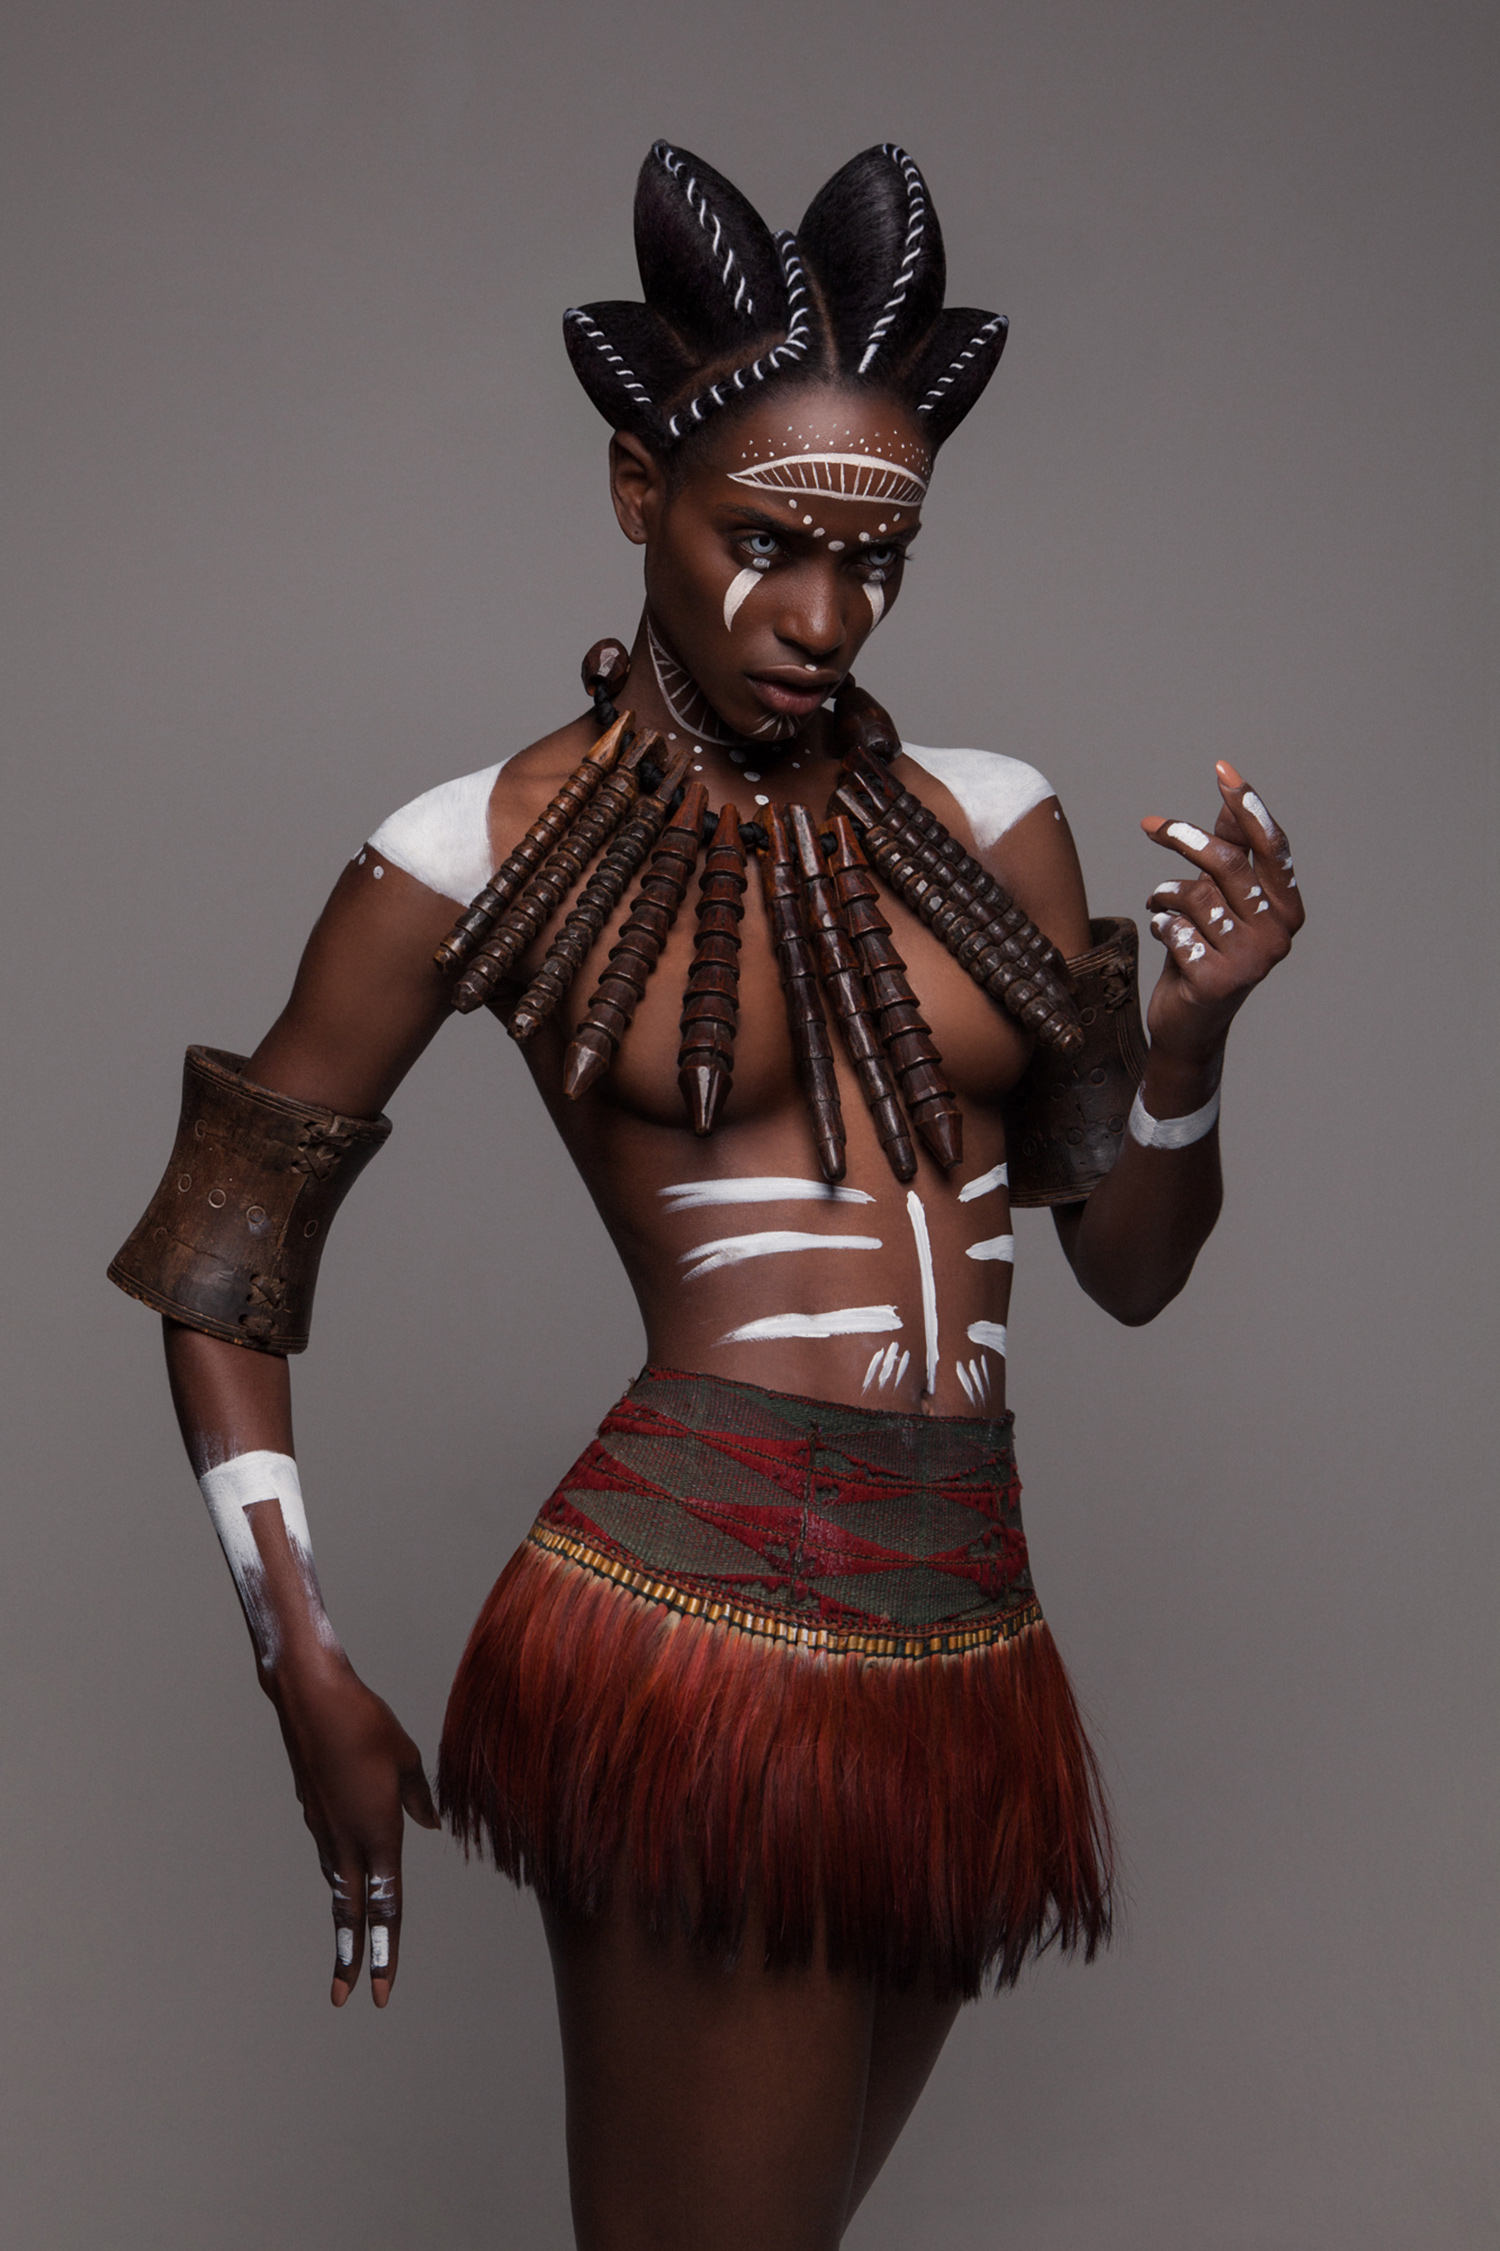 Luke Nugent - British Hair Awards 2016 - Afro Finalist Collection - body paint 2